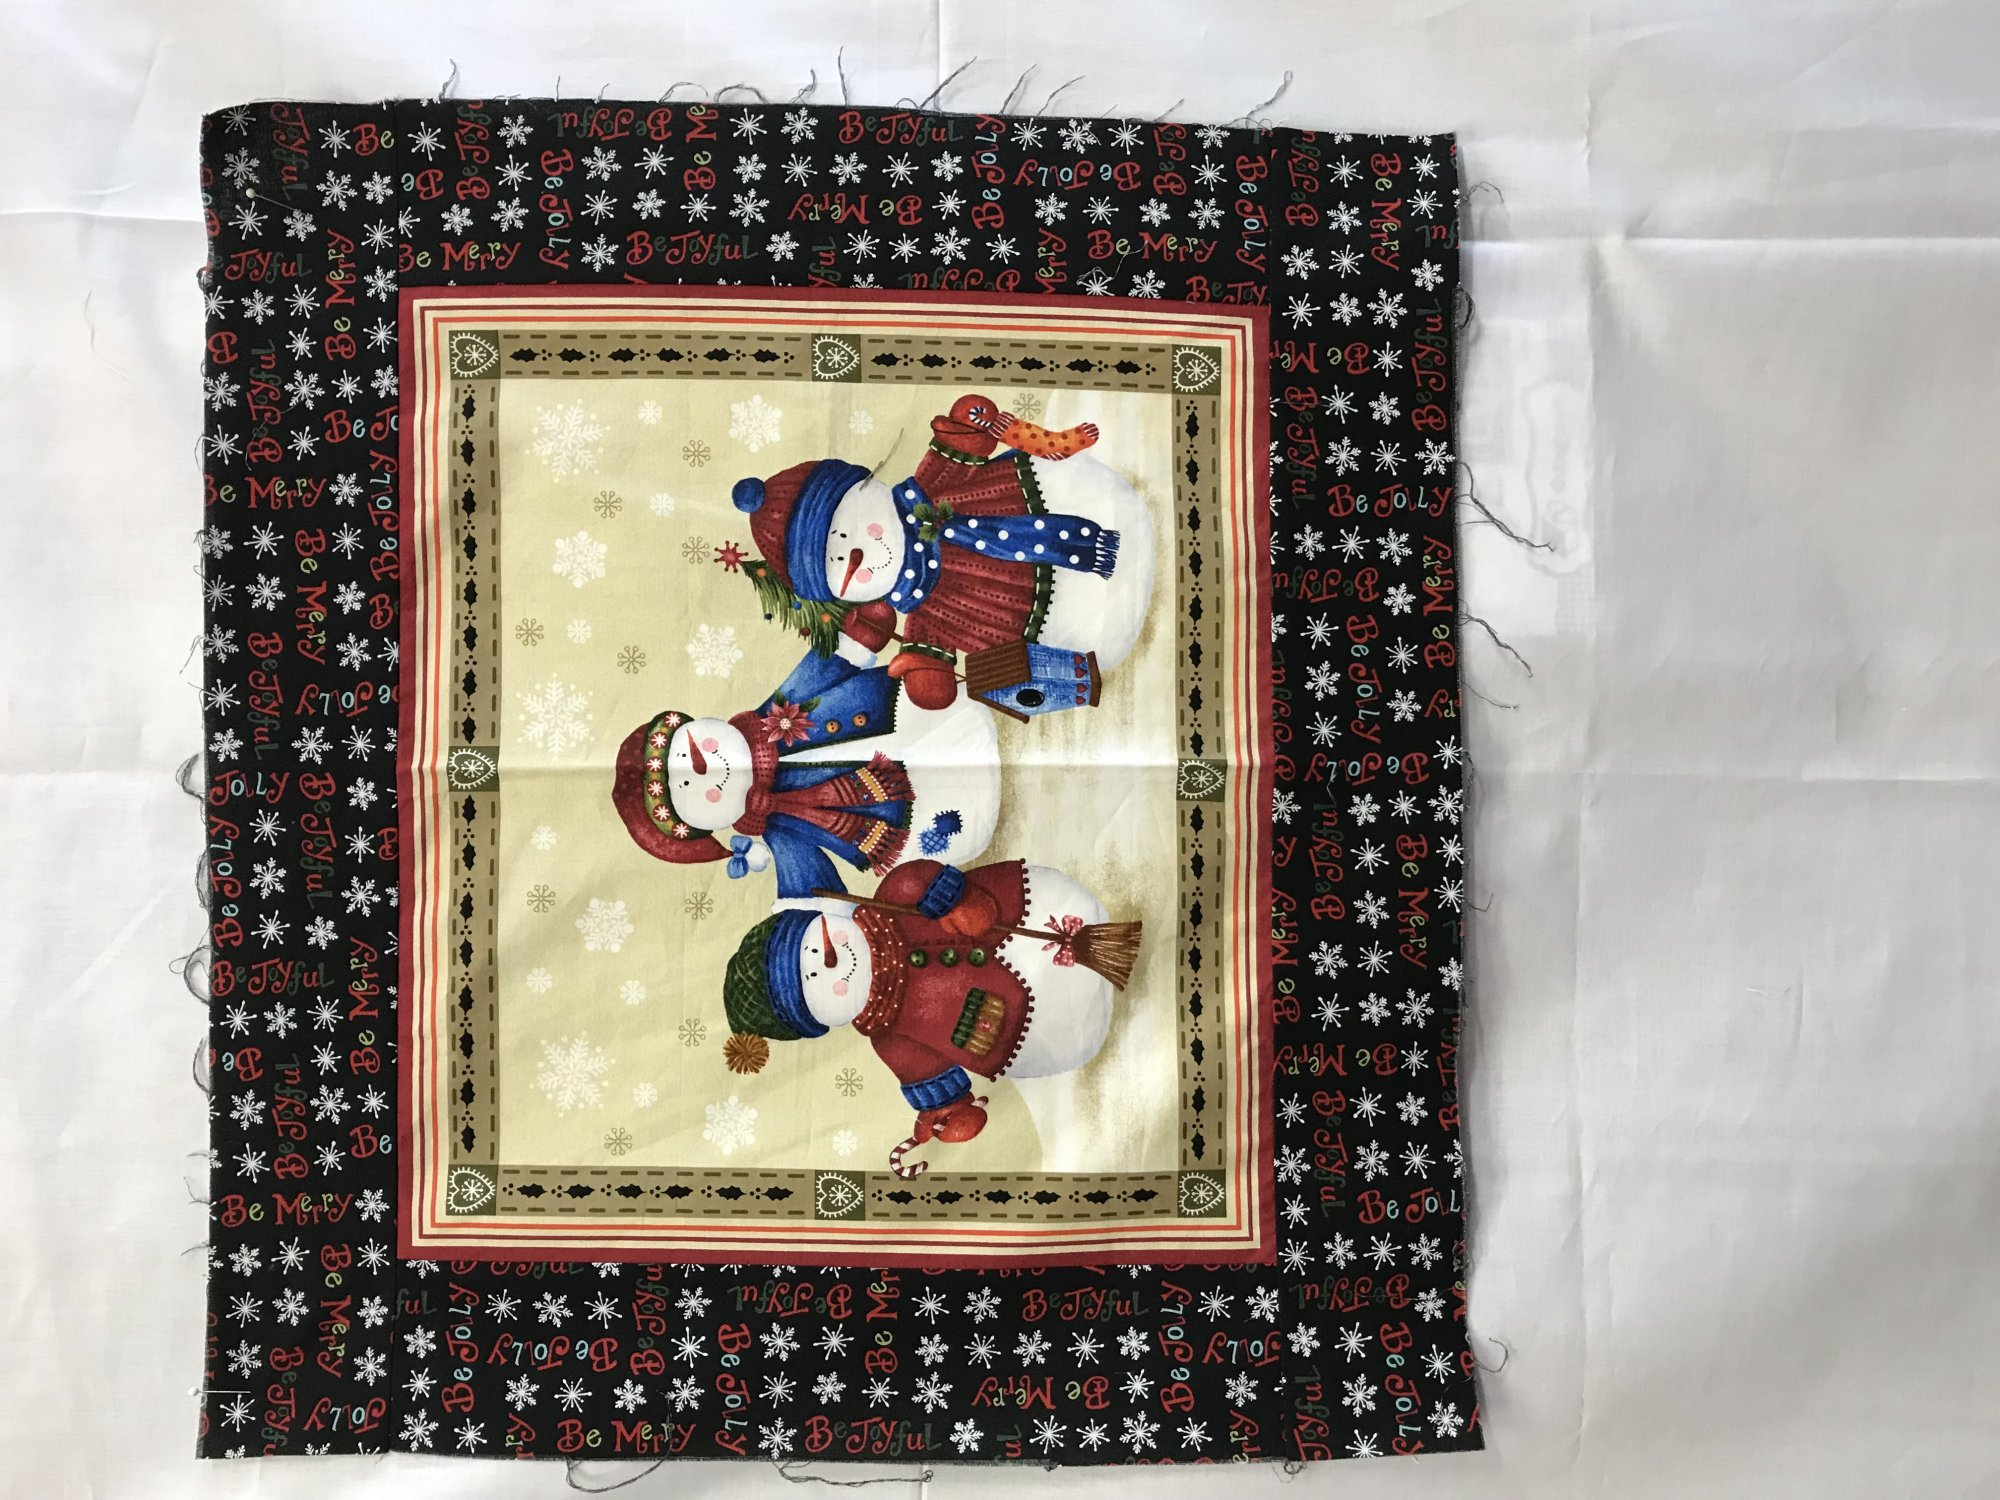 Snowman Wallhanging Sample 21 x 23